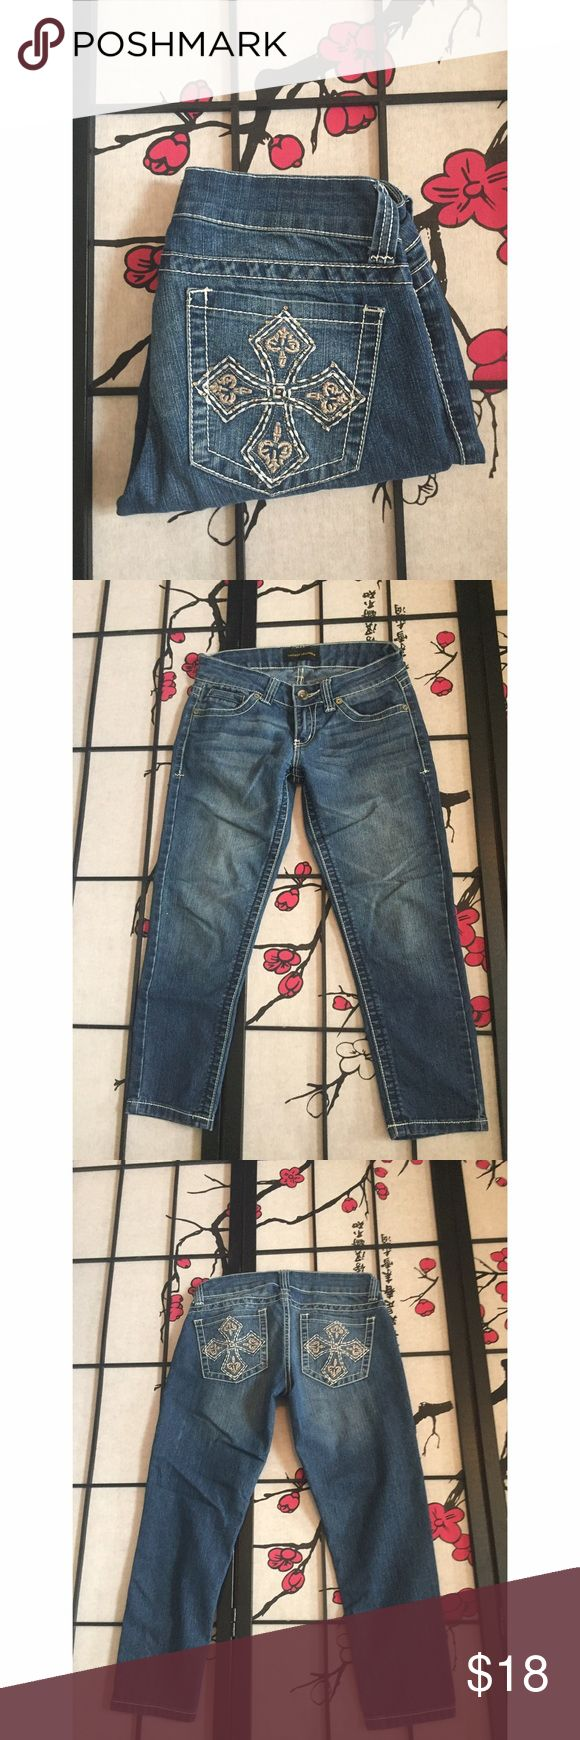 Chinese Laundry Cropped Jeans Measurements - Waist 15 1/2in / inseam 25in / Length 32in Chinese Laundry Jeans Ankle & Cropped